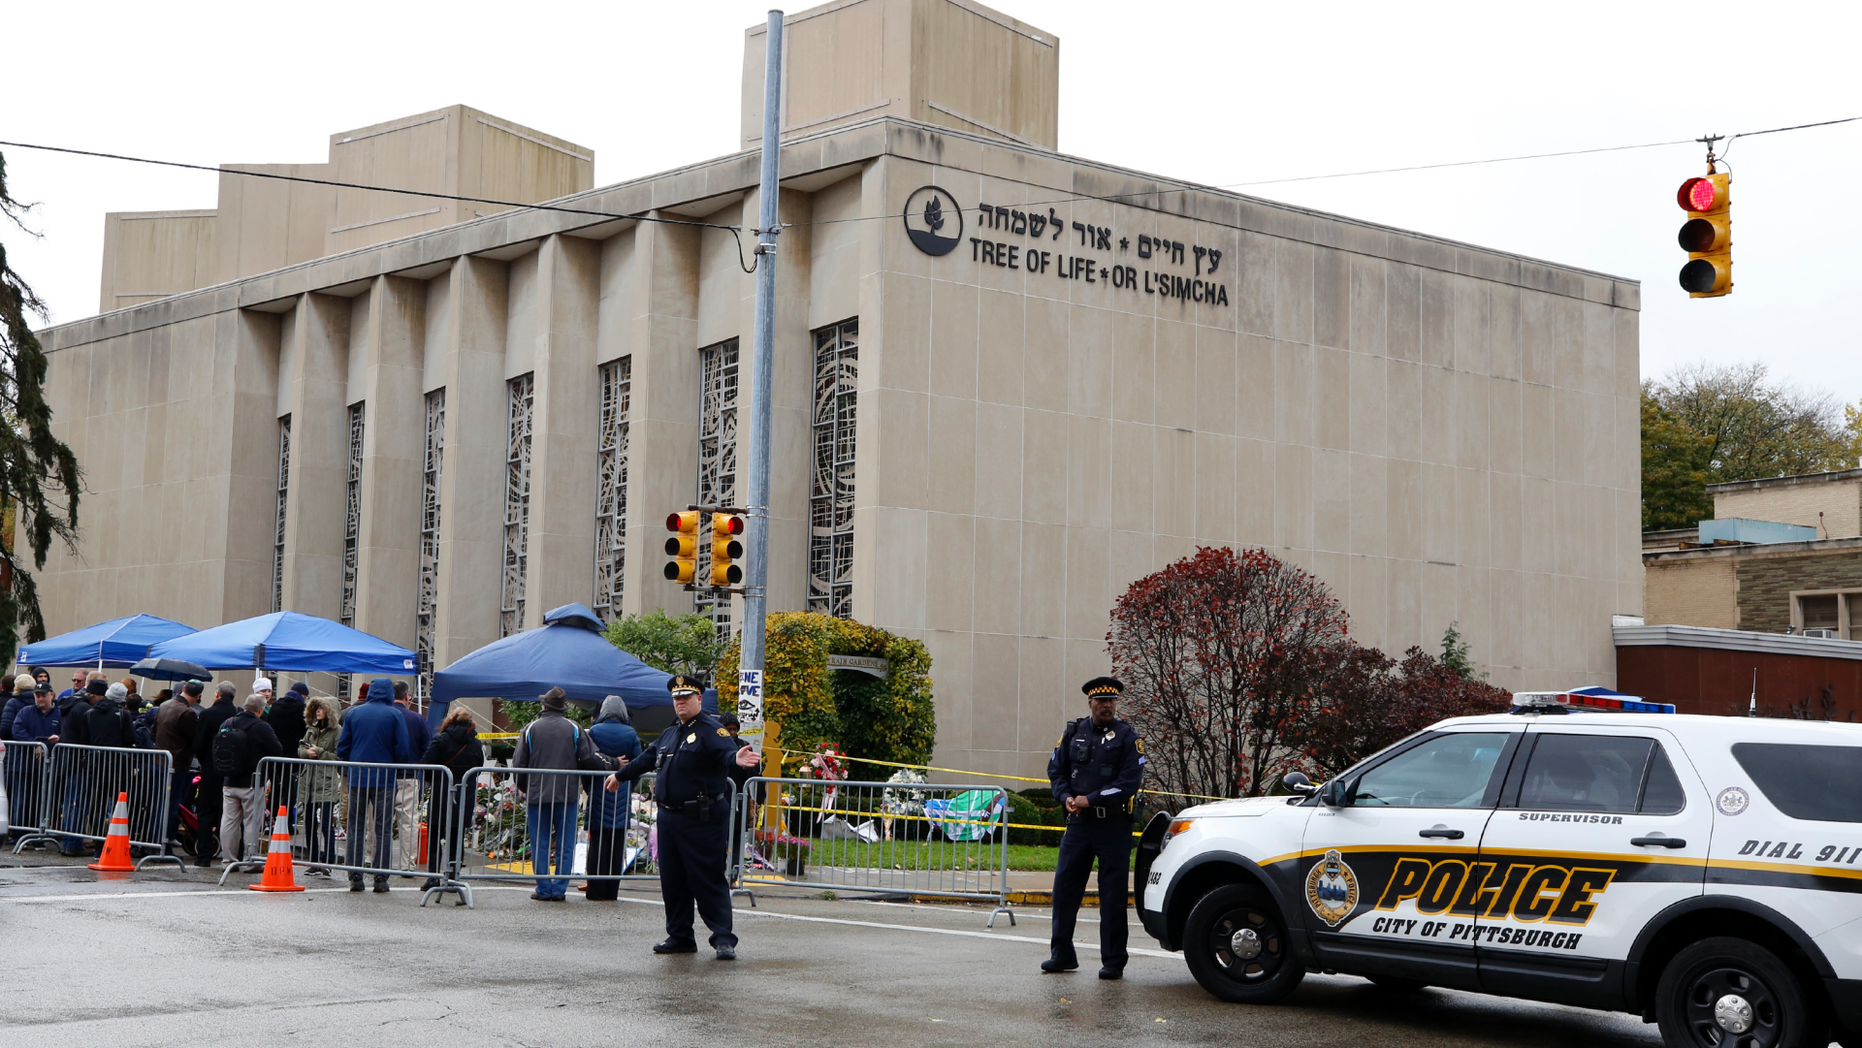 Pittsburgh Police direct traffic as their vehicles close the street adjacent to the Tree of Life Synagogue on Saturday Nov. 3 2018 as a curbside Shabbat morning service is held on the street corner in the Squirrel Hill neighborhood of Pittsburgh. The